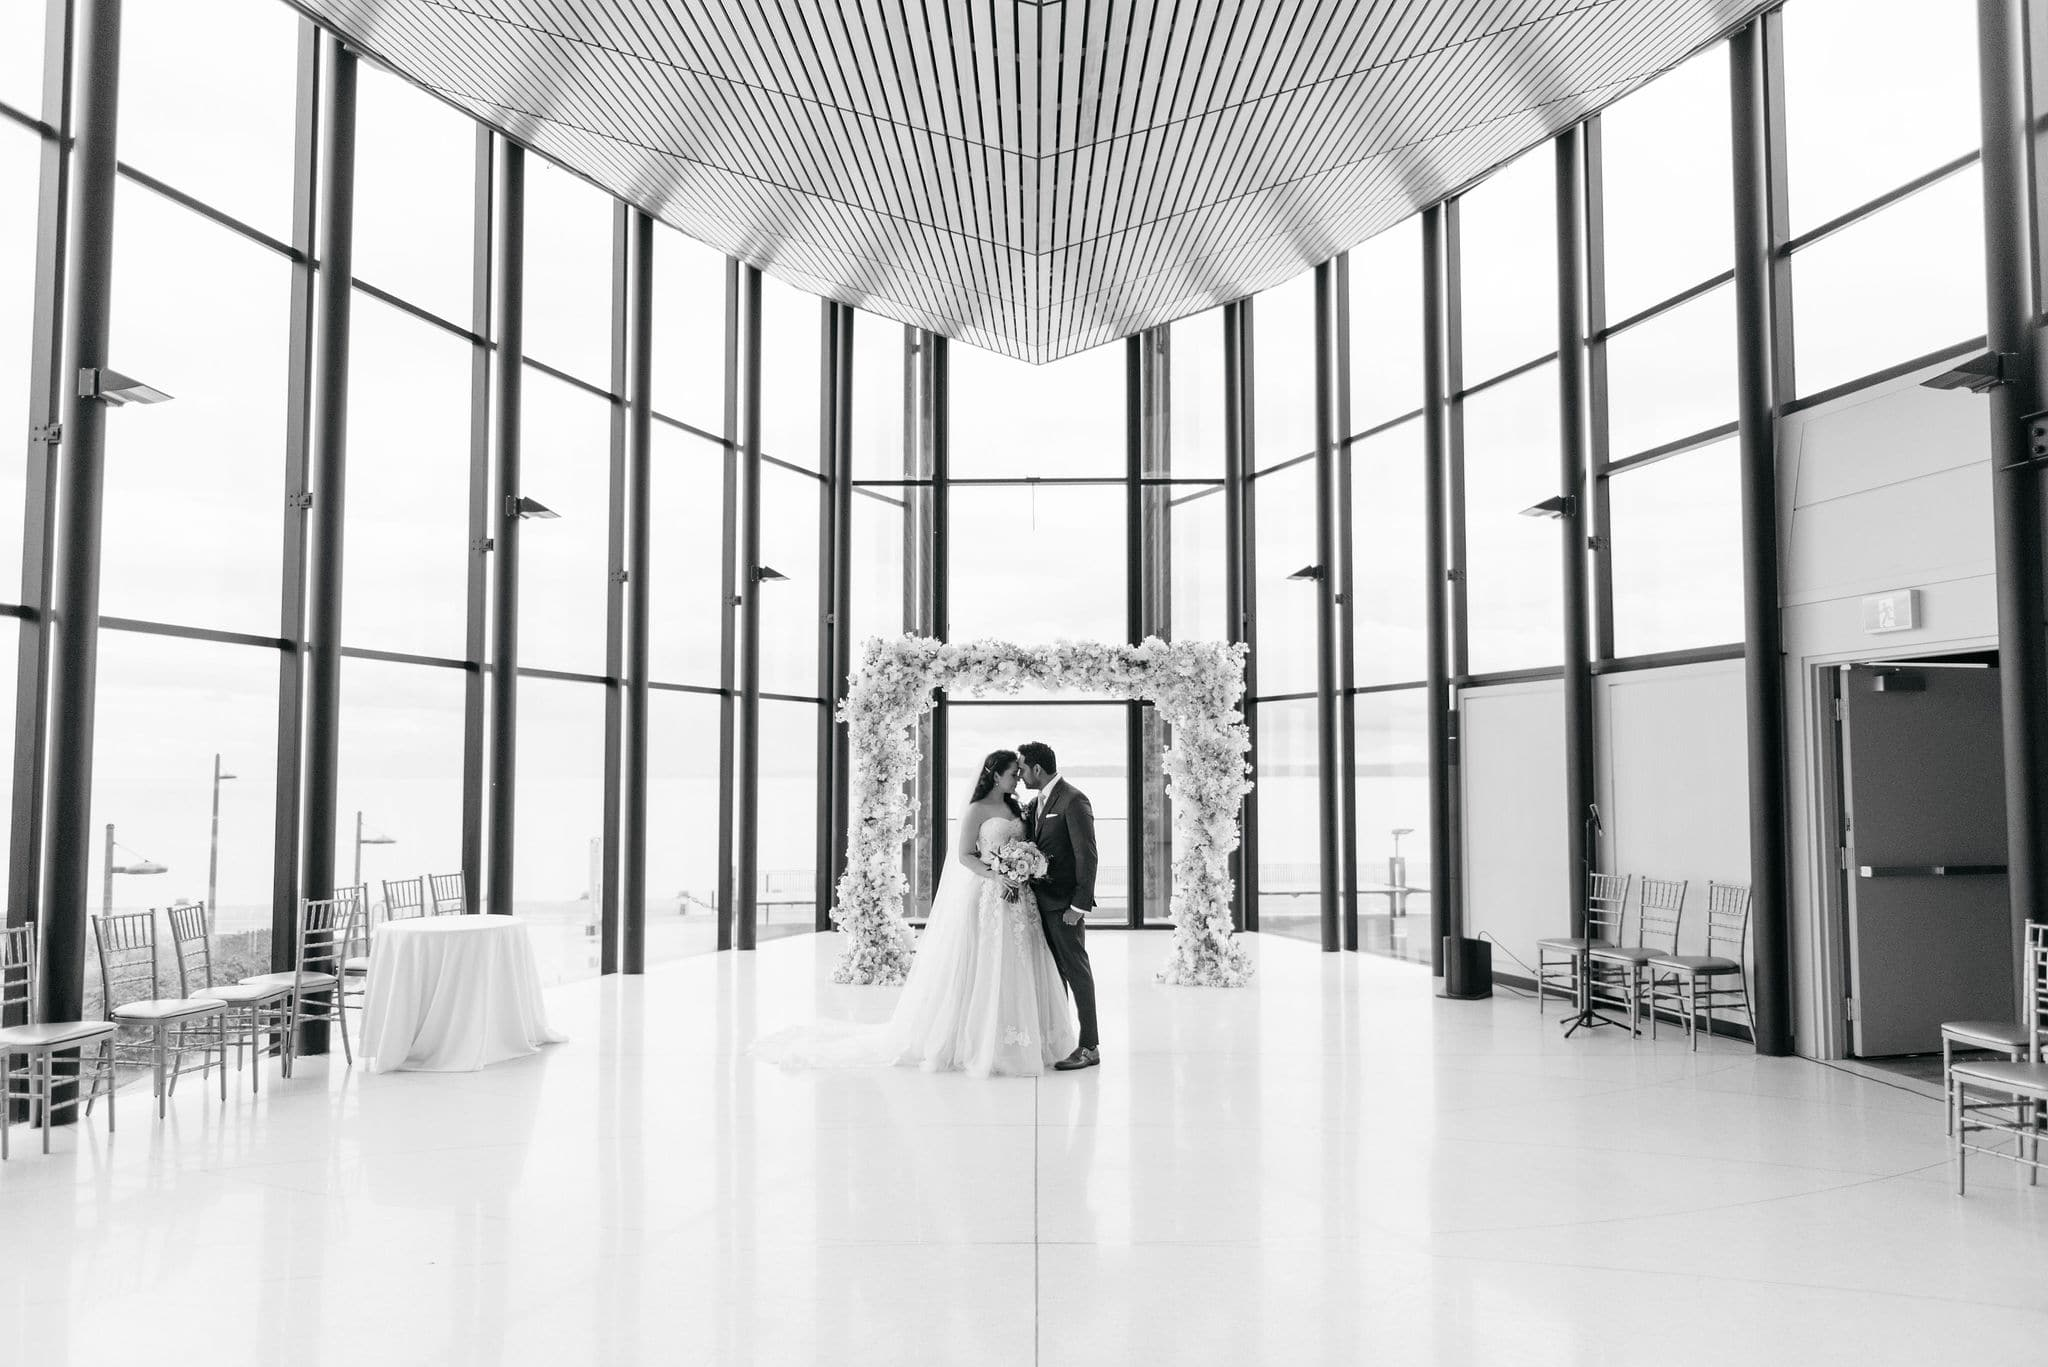 Hero image for Maggie and Sunil's Sweet and Simple Wedding at Spencer's at the Waterfront